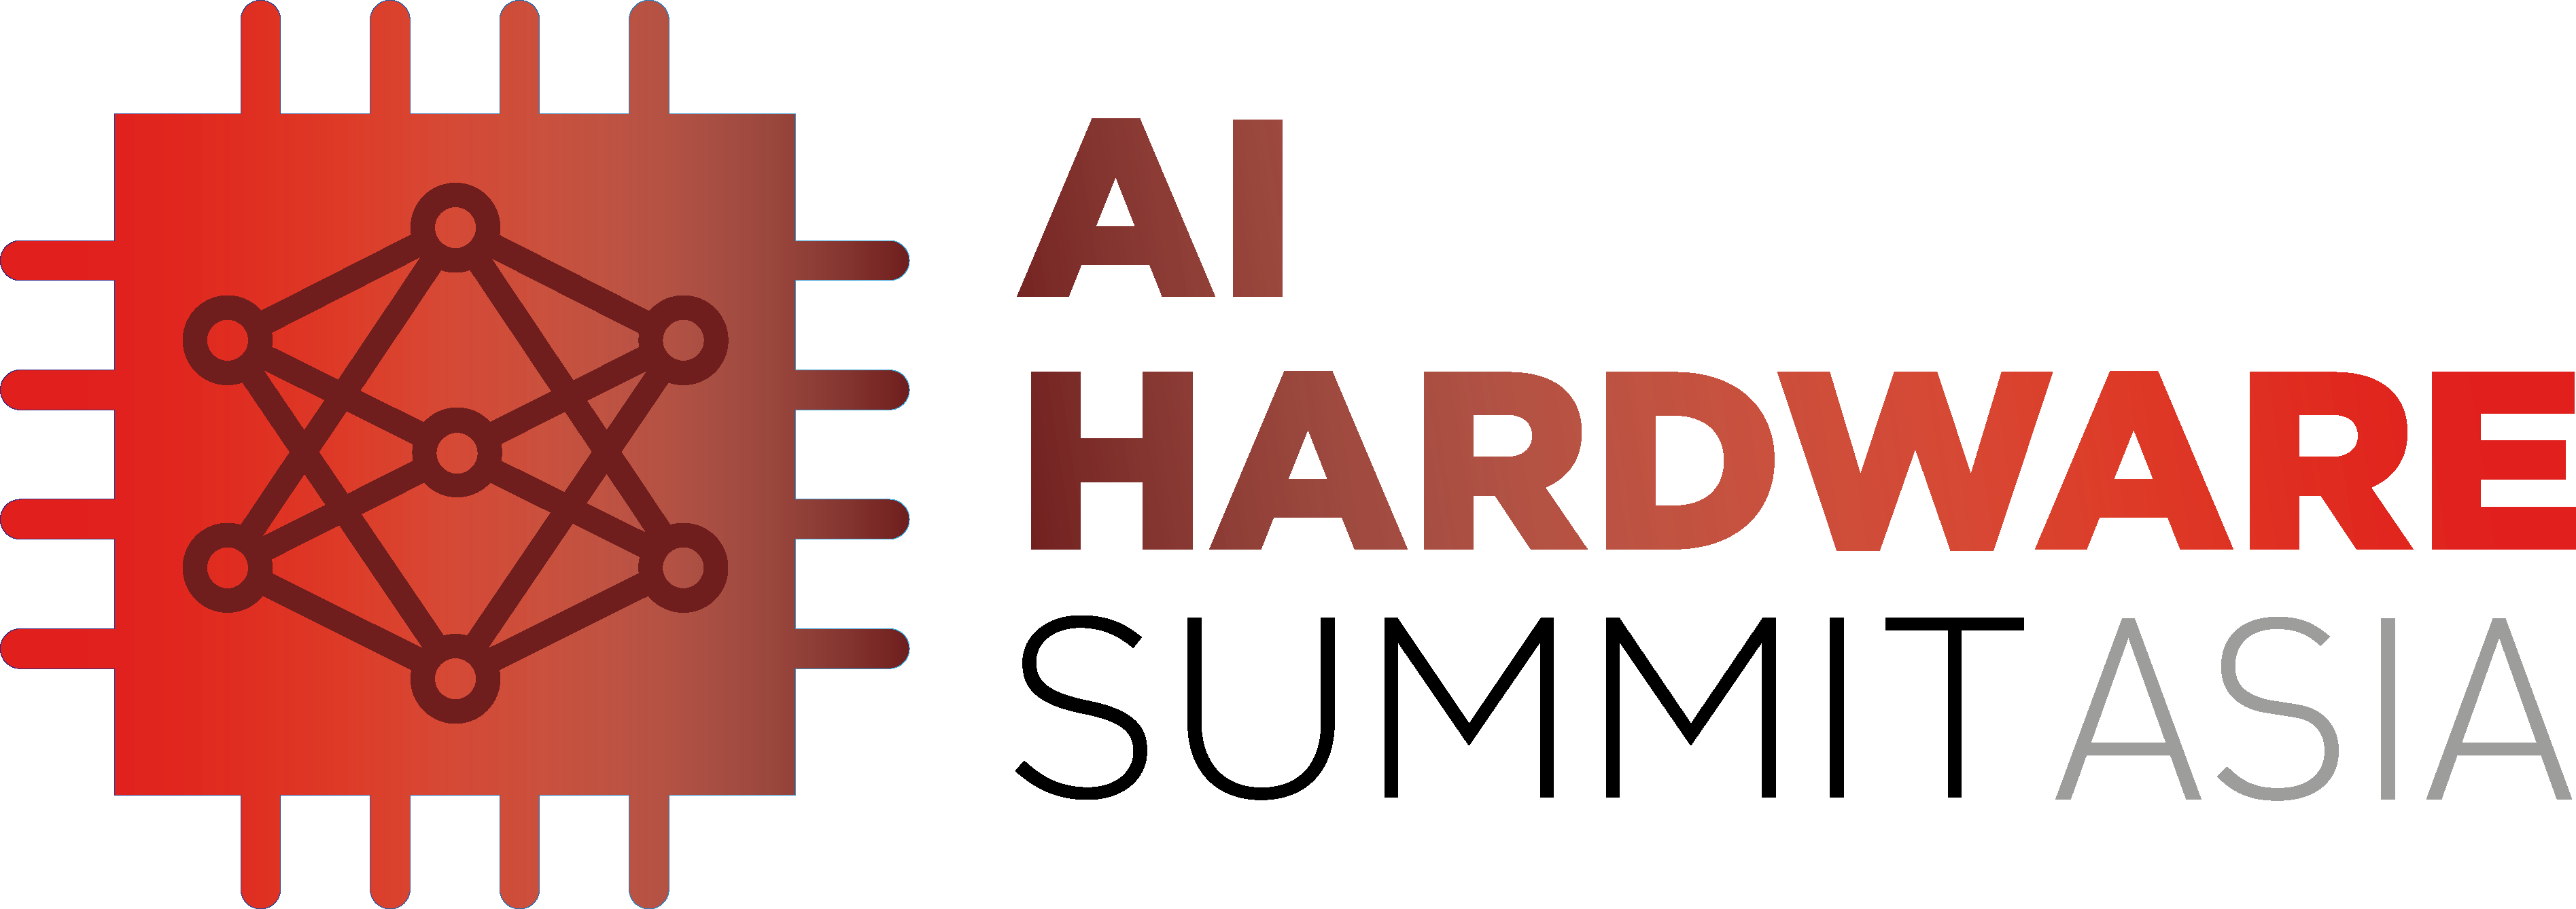 182832_ai_hardware_summit_logo_asia_final_v3_b.png